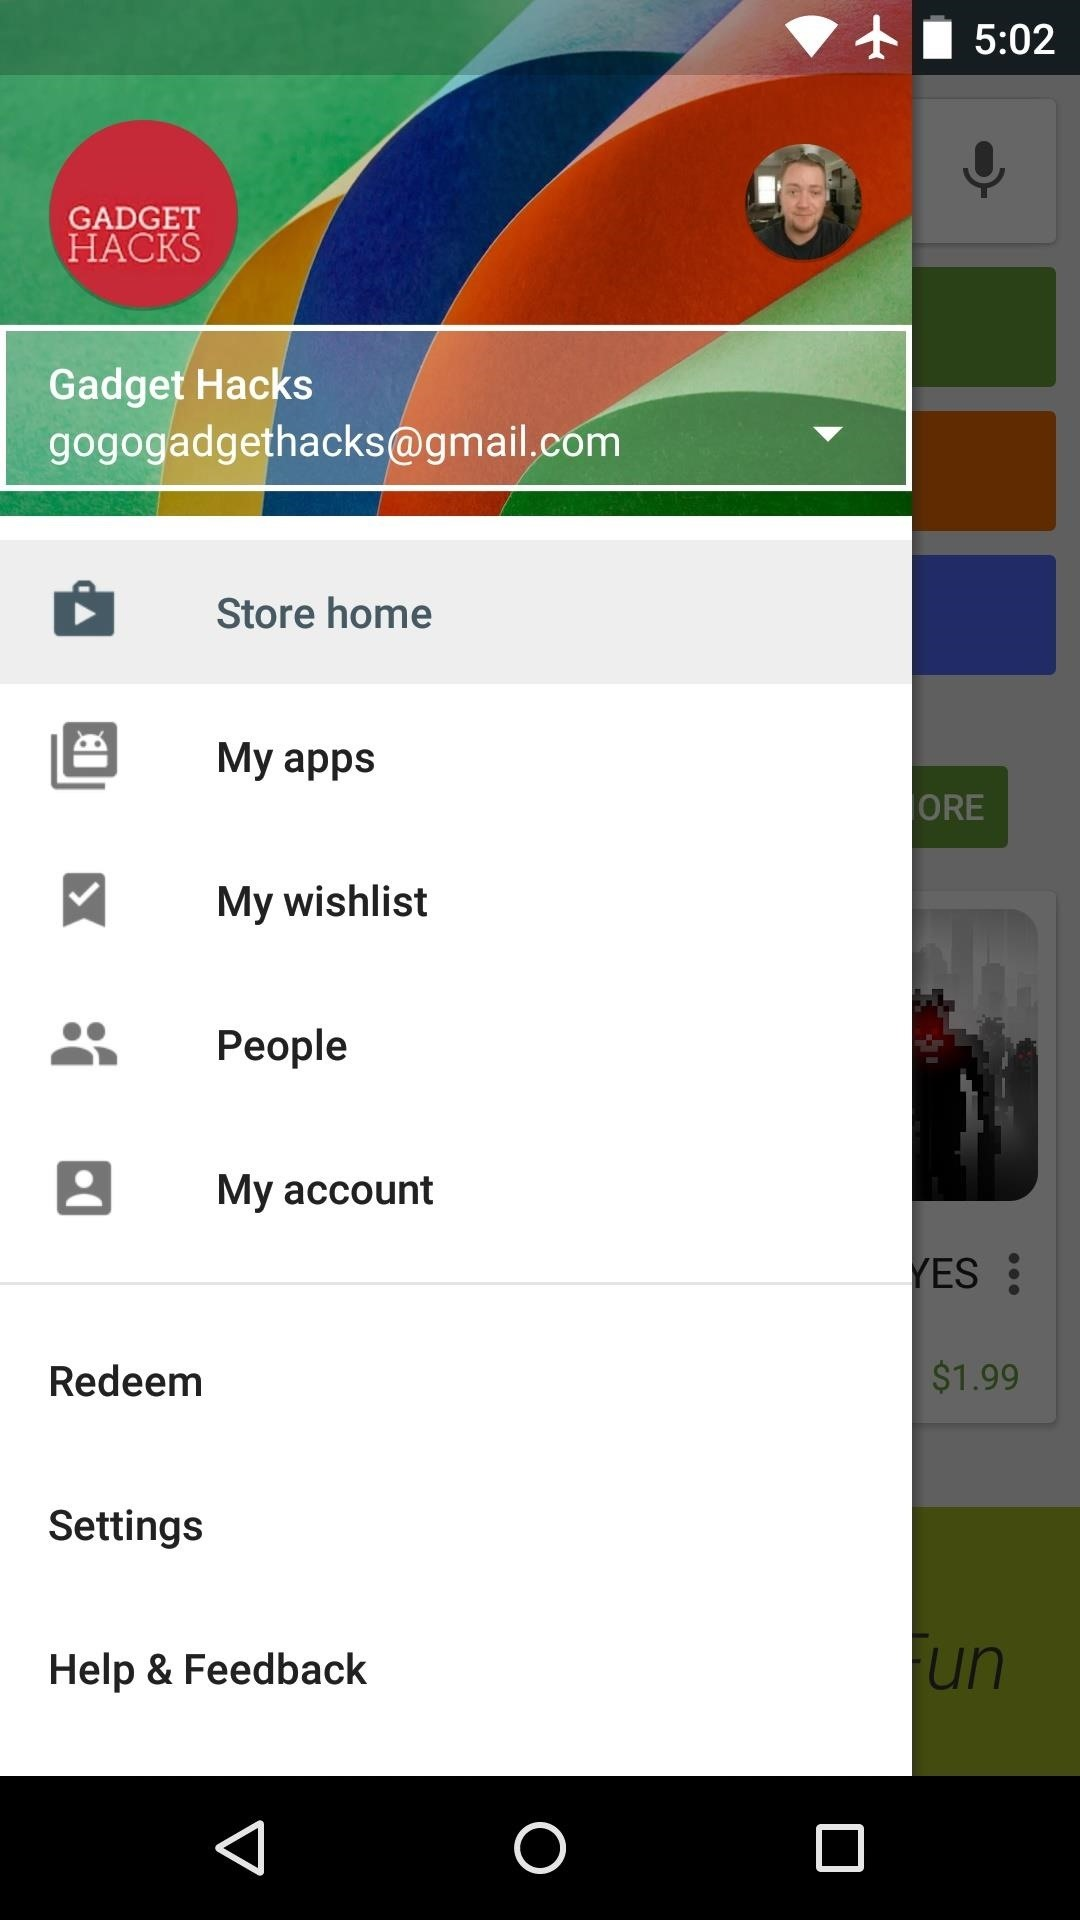 How to Share Paid Android Apps for Free (Legally)